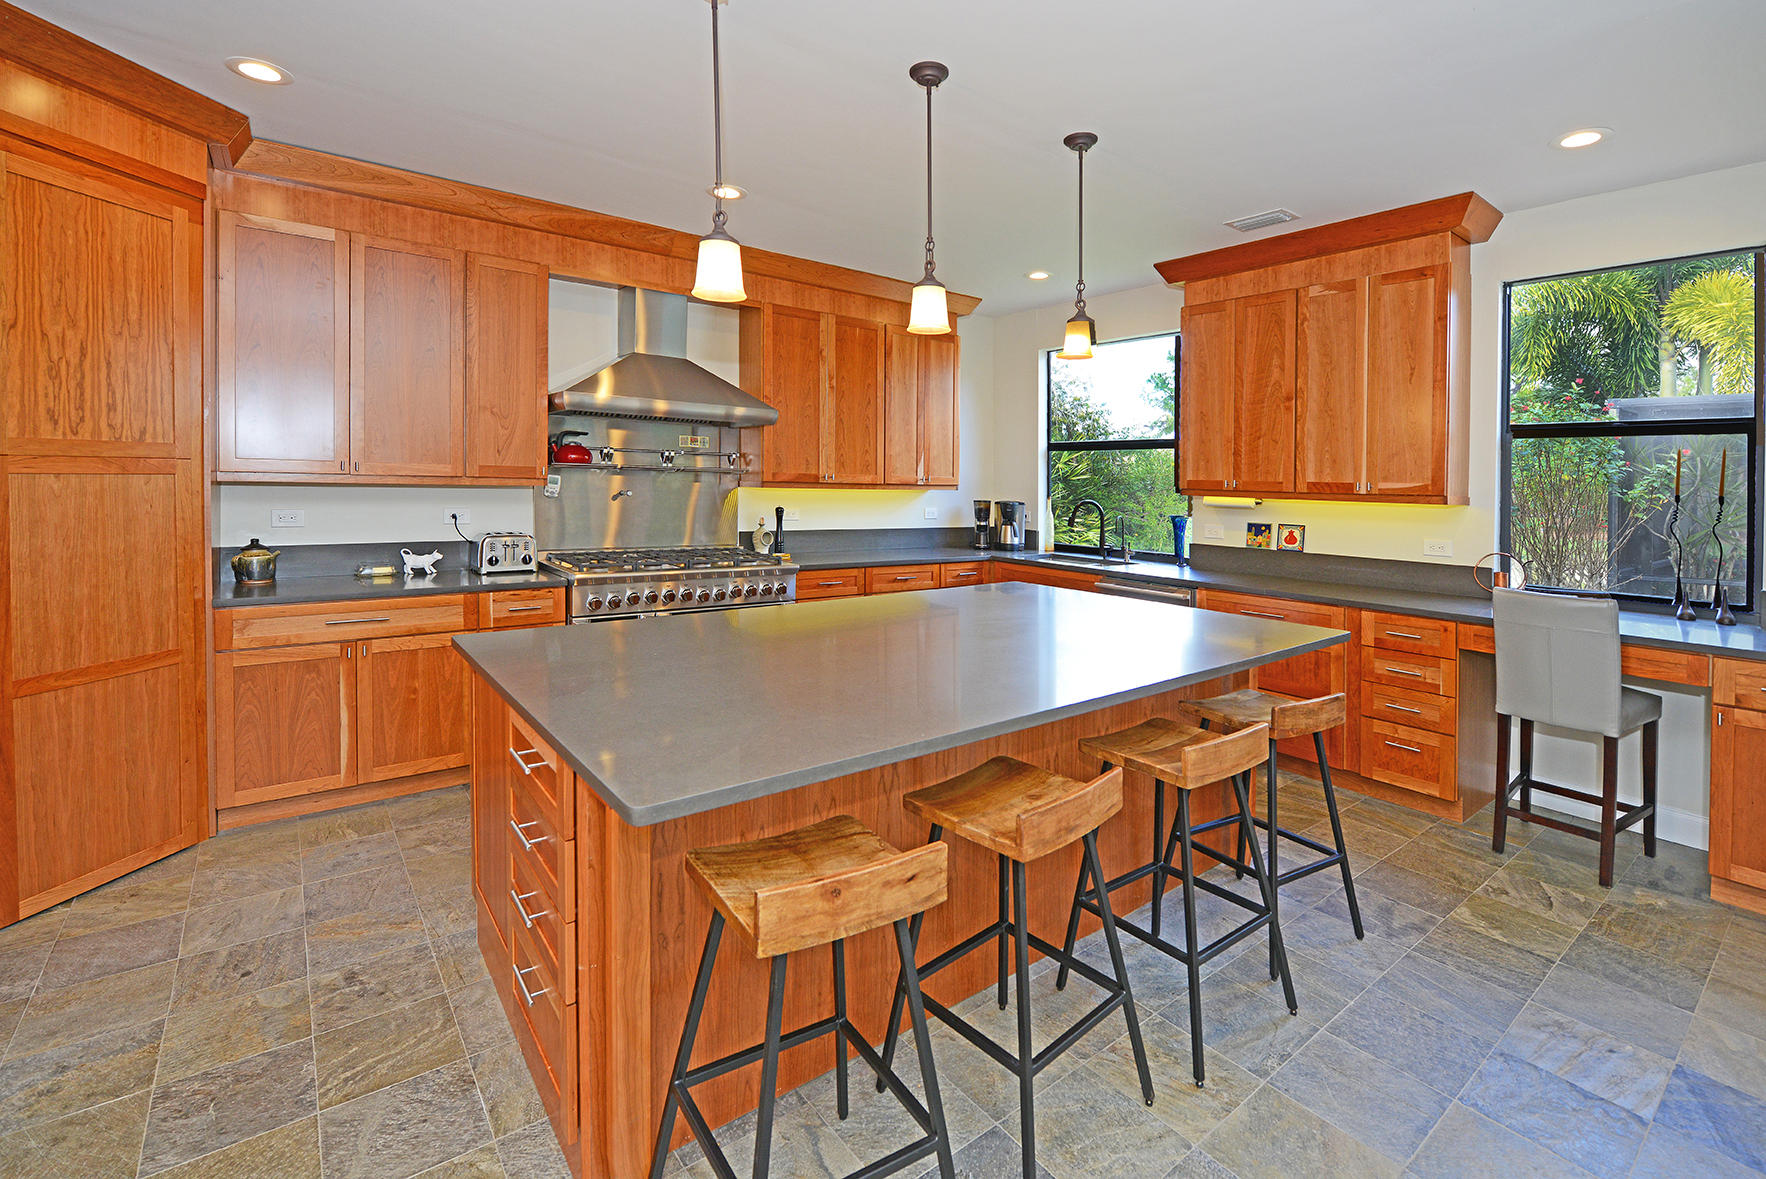 New Home for sale at 1488 Colony Way in Jupiter